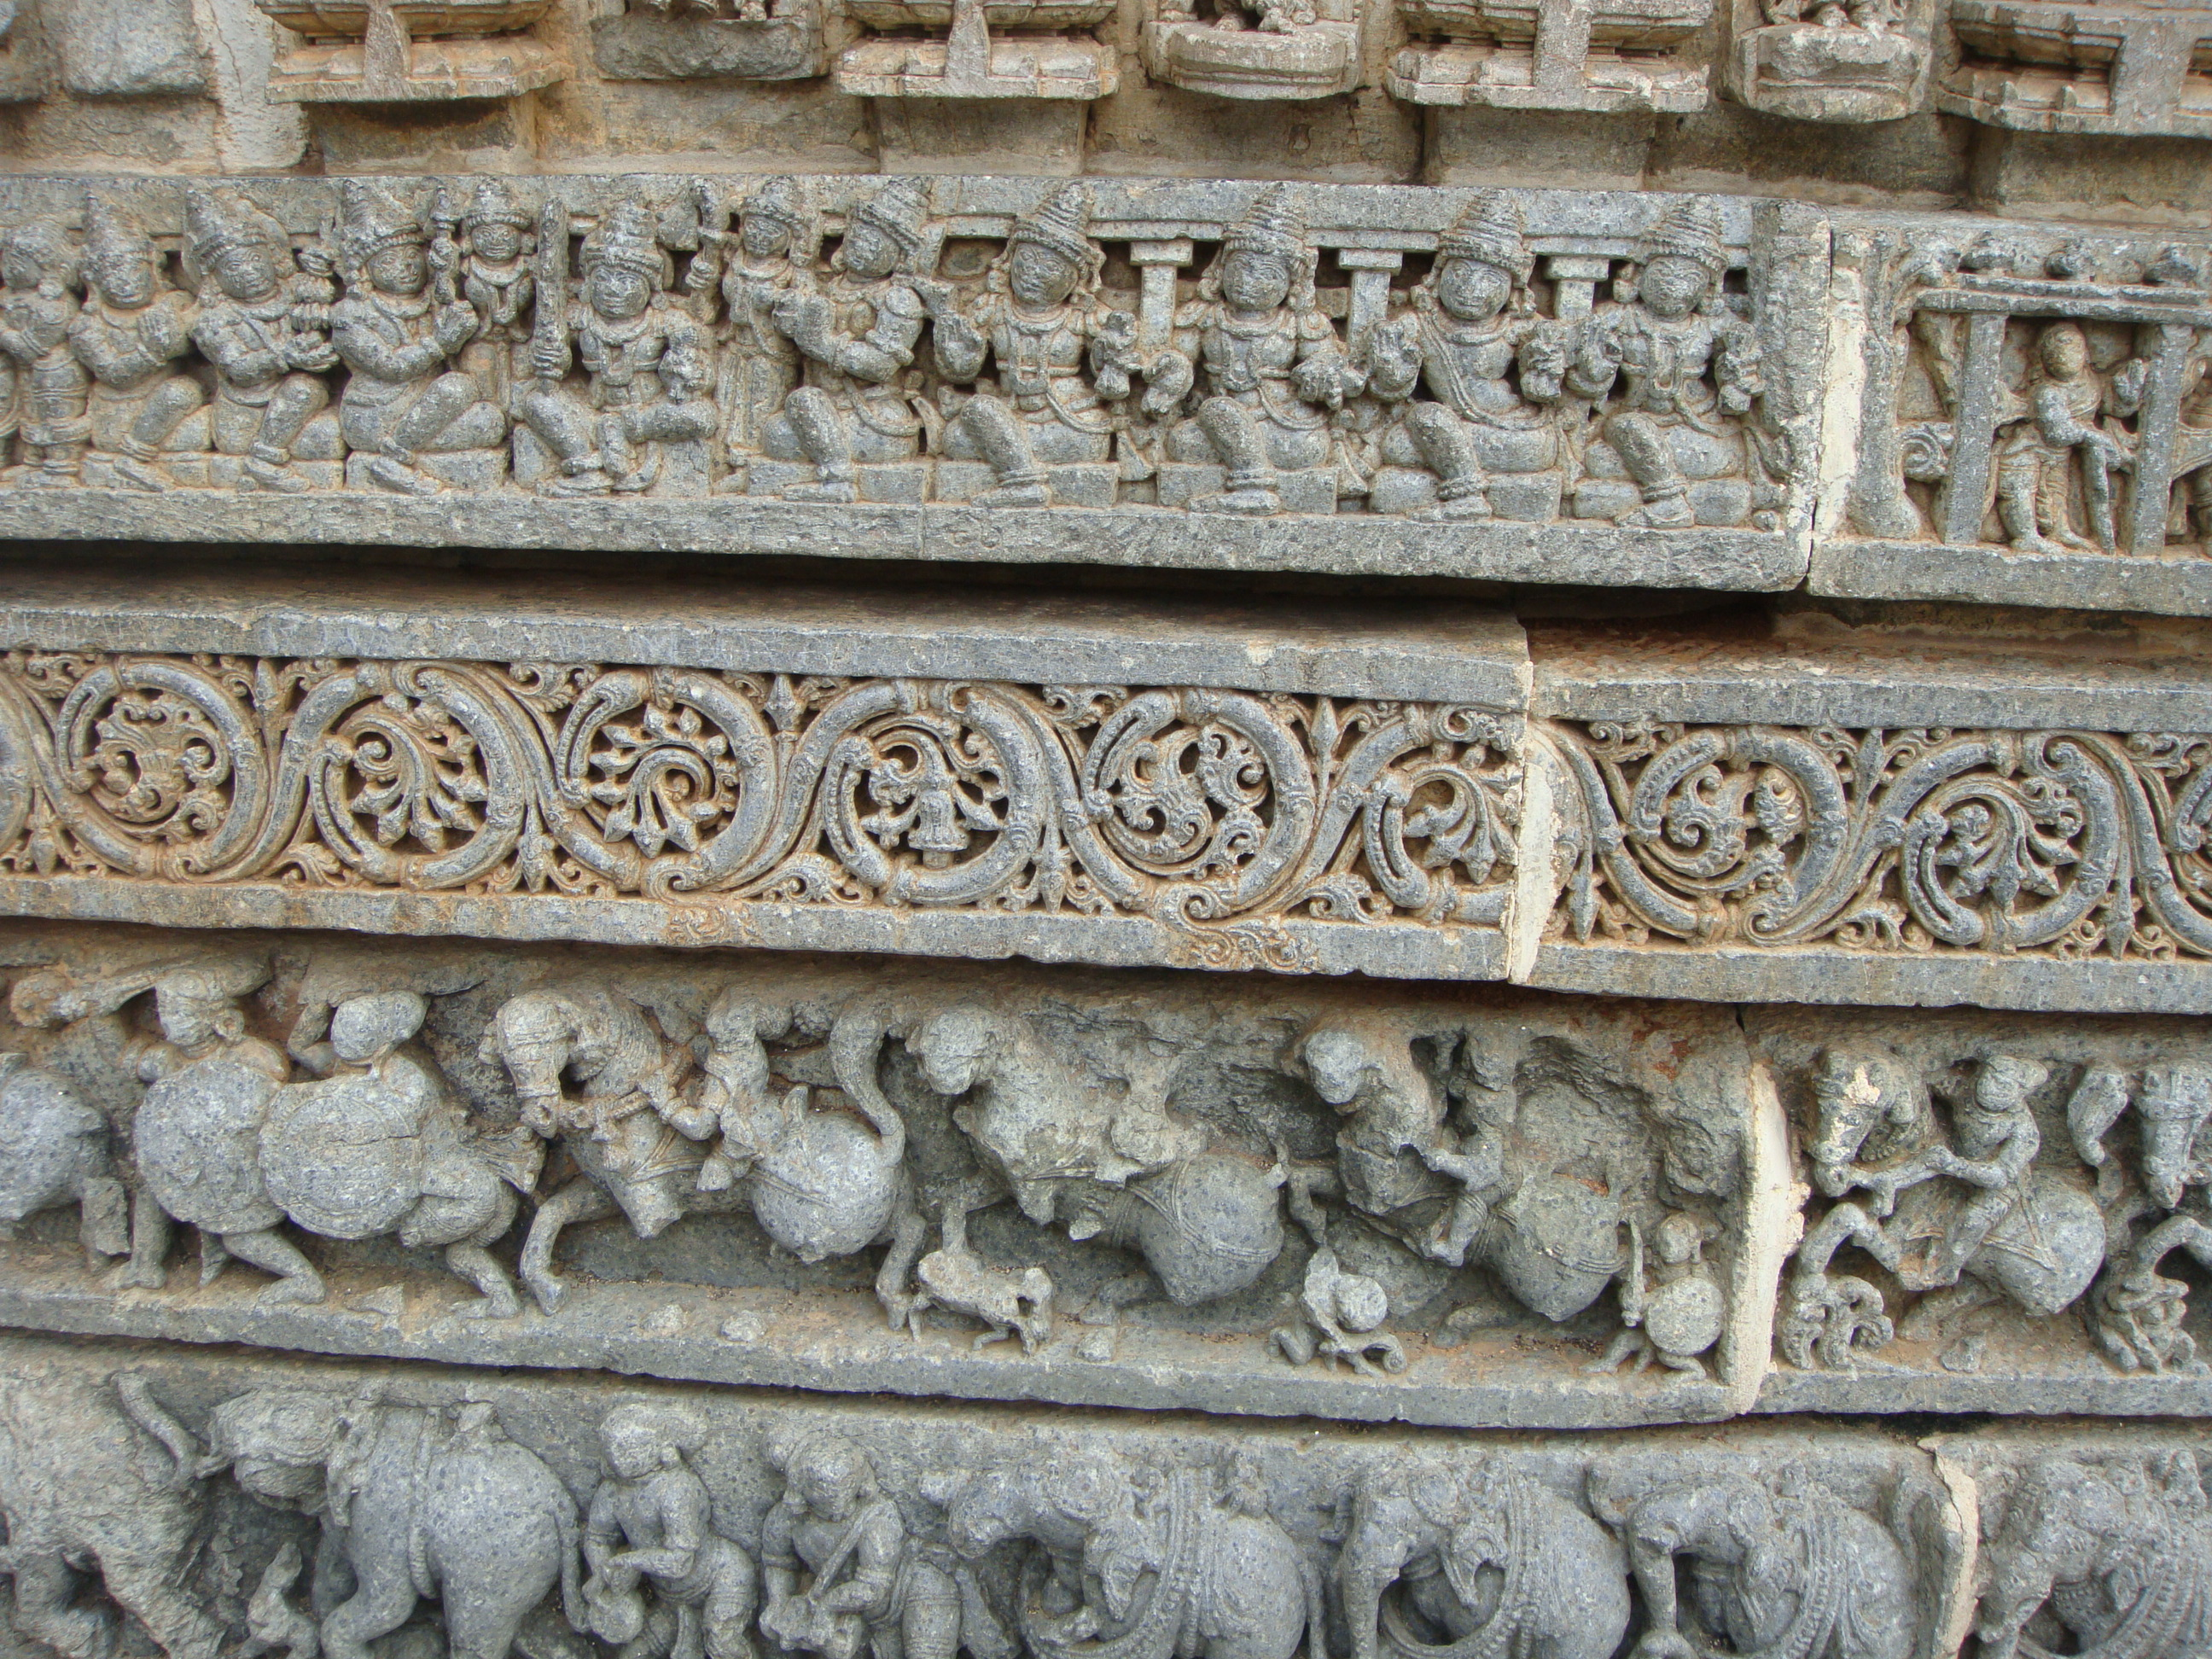 File:Frieze patterns in relief at the Keshava temple 3.jpg - Wikimedia ...